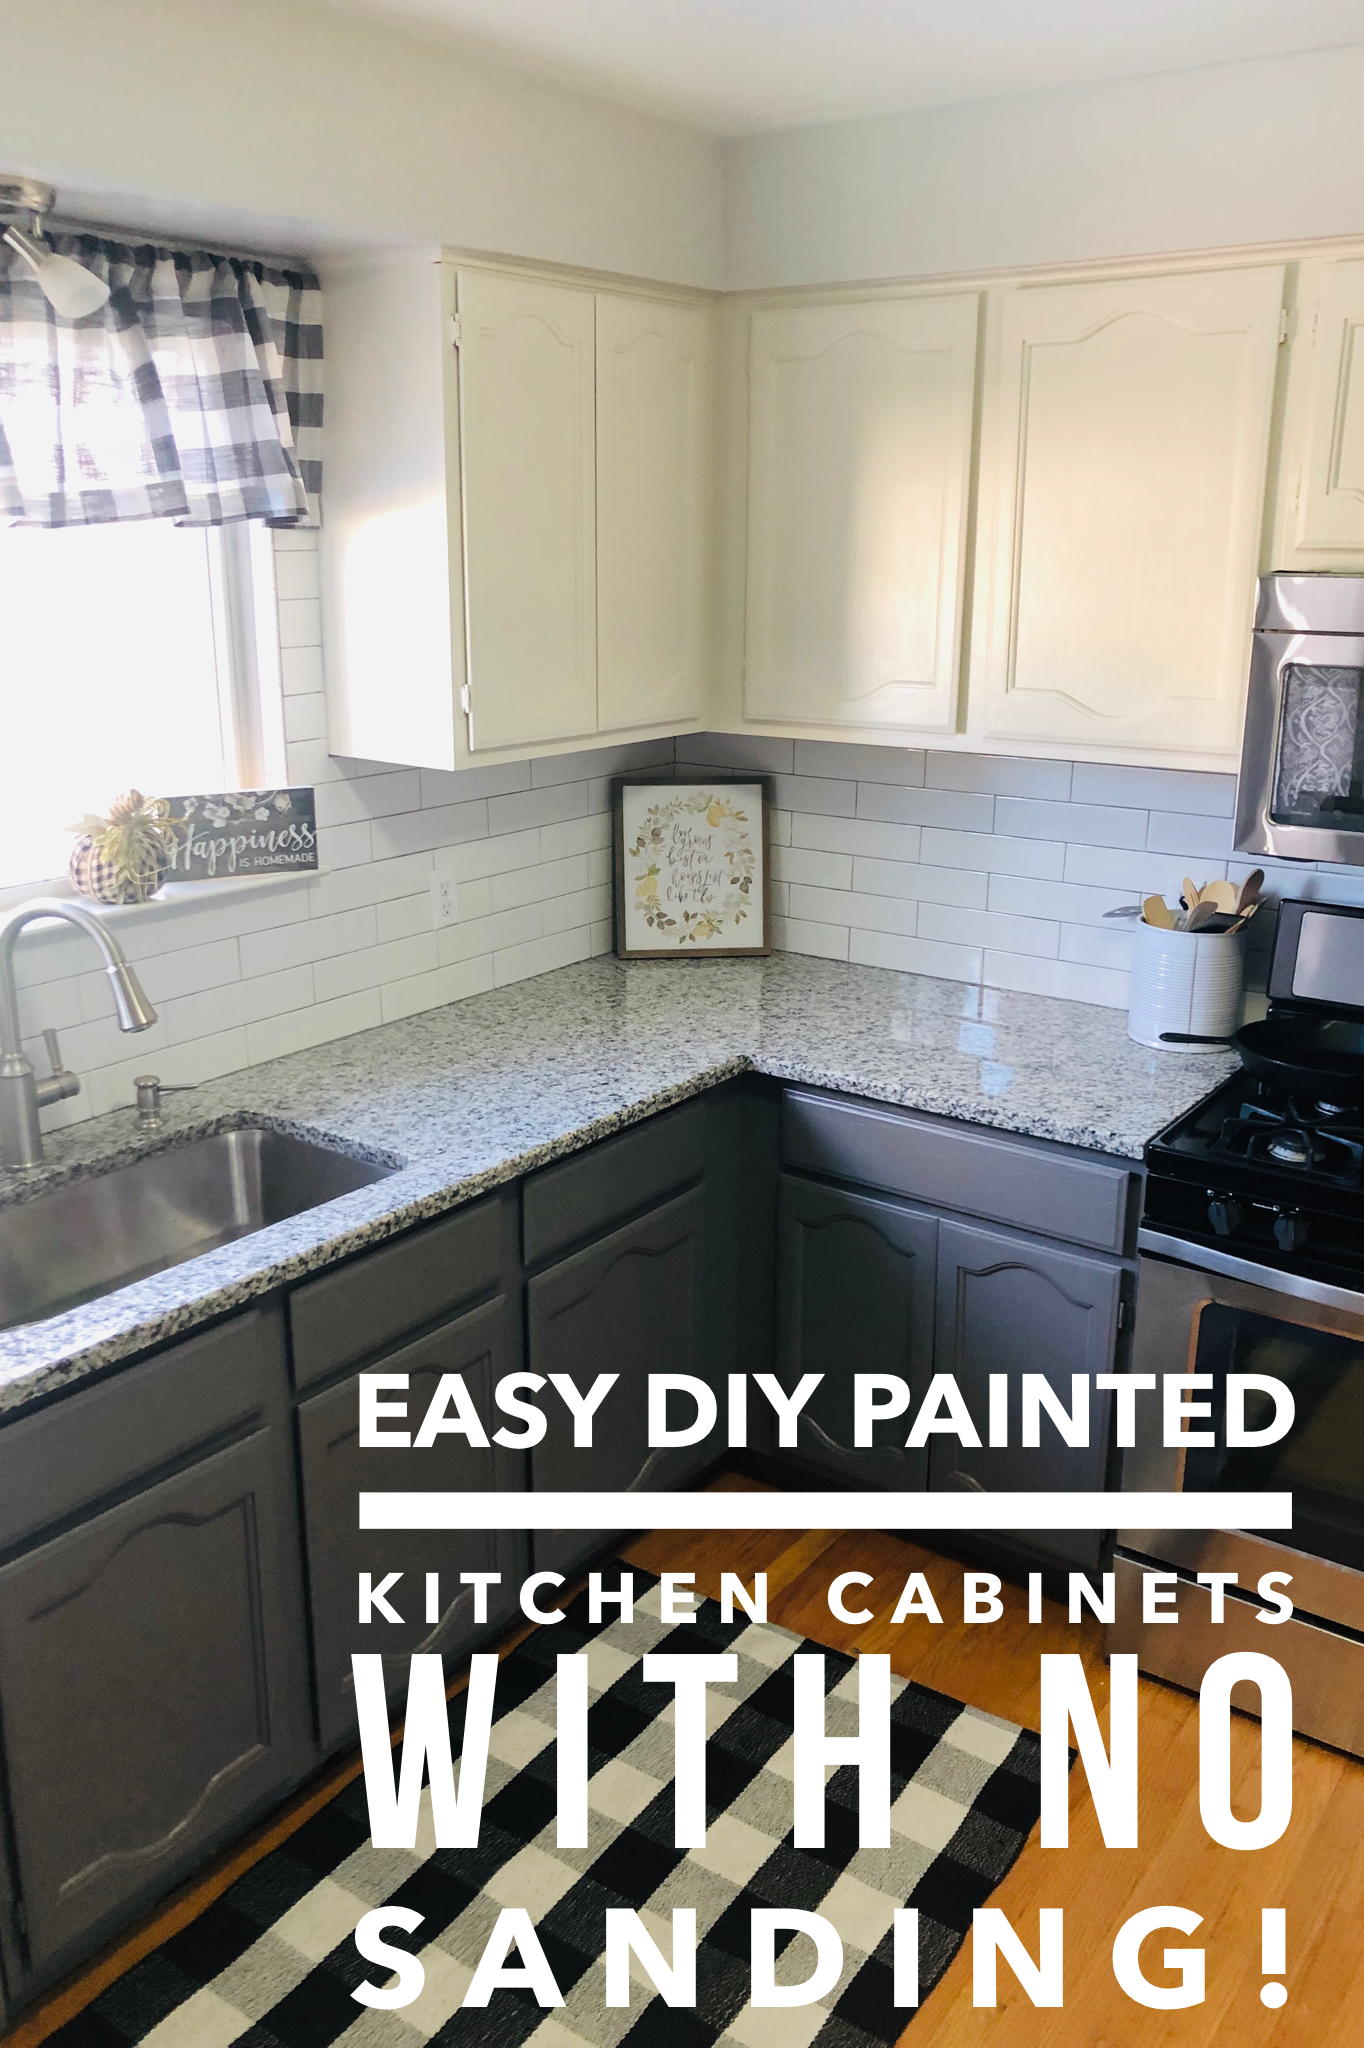 Paint Your Kitchen Cabinets In 2020 Simple Kitchen Remodel Diy Kitchen Remodel Diy Kitchen Cabinets Painting